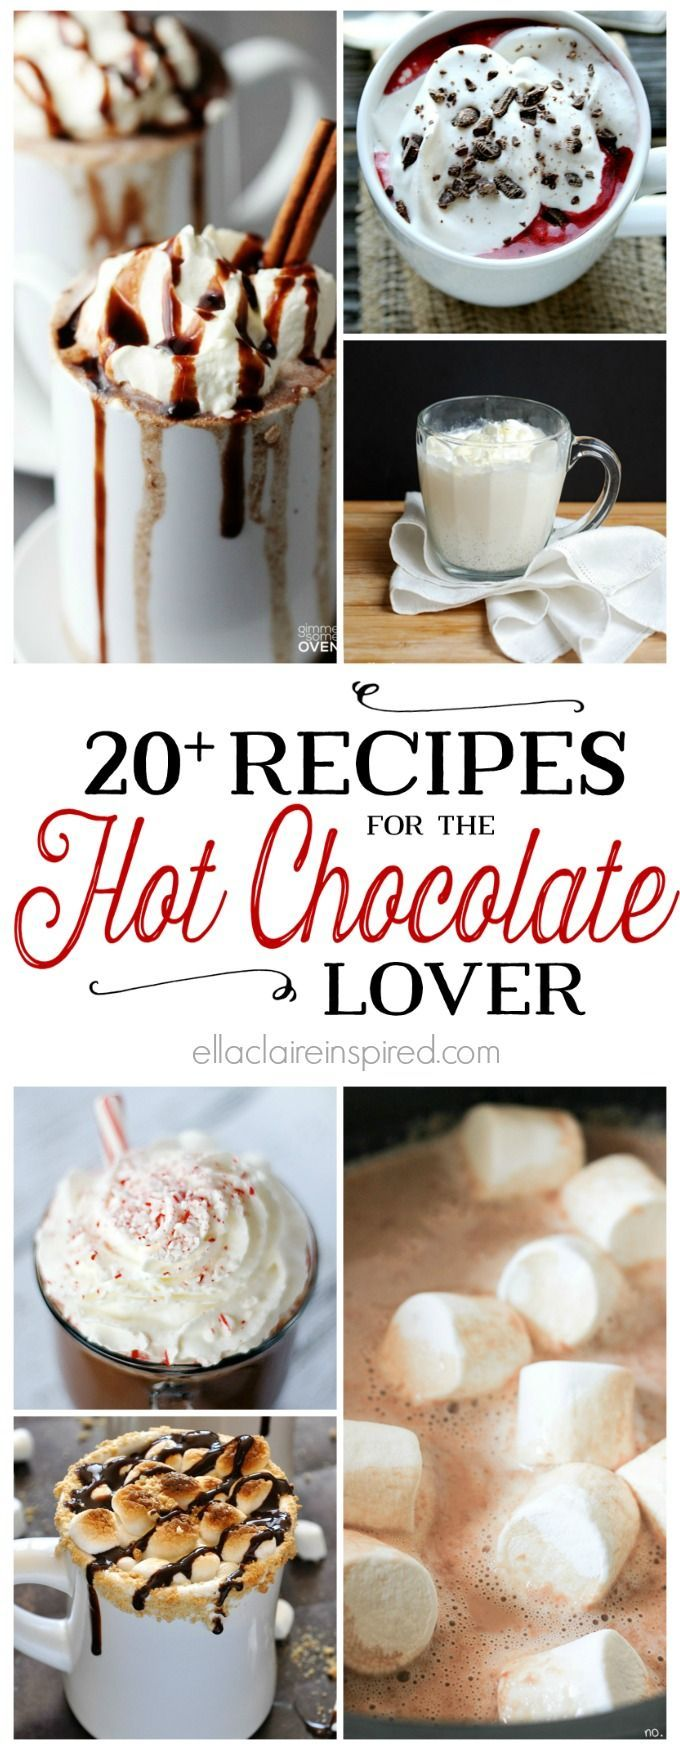 Nothing satisfies that winter sweet tooth like a warm cup of hot chocolate. These 20 decadent recipes will keep you cozy all winter long. Find them here at Ella Claire.